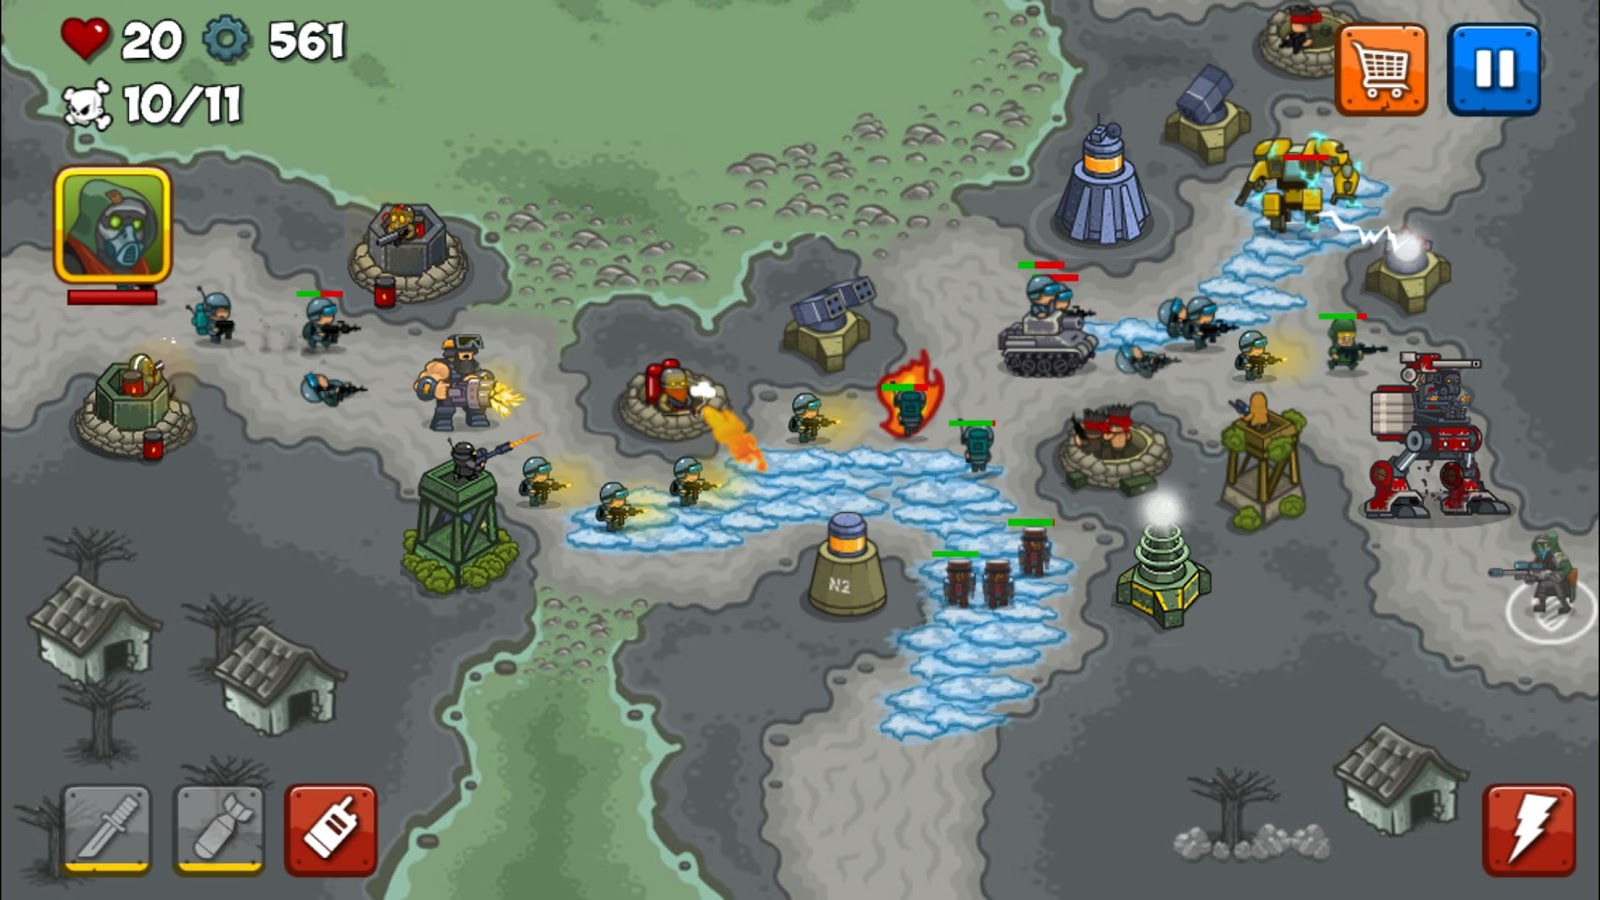 Combat Tower Defense Screenshot 1